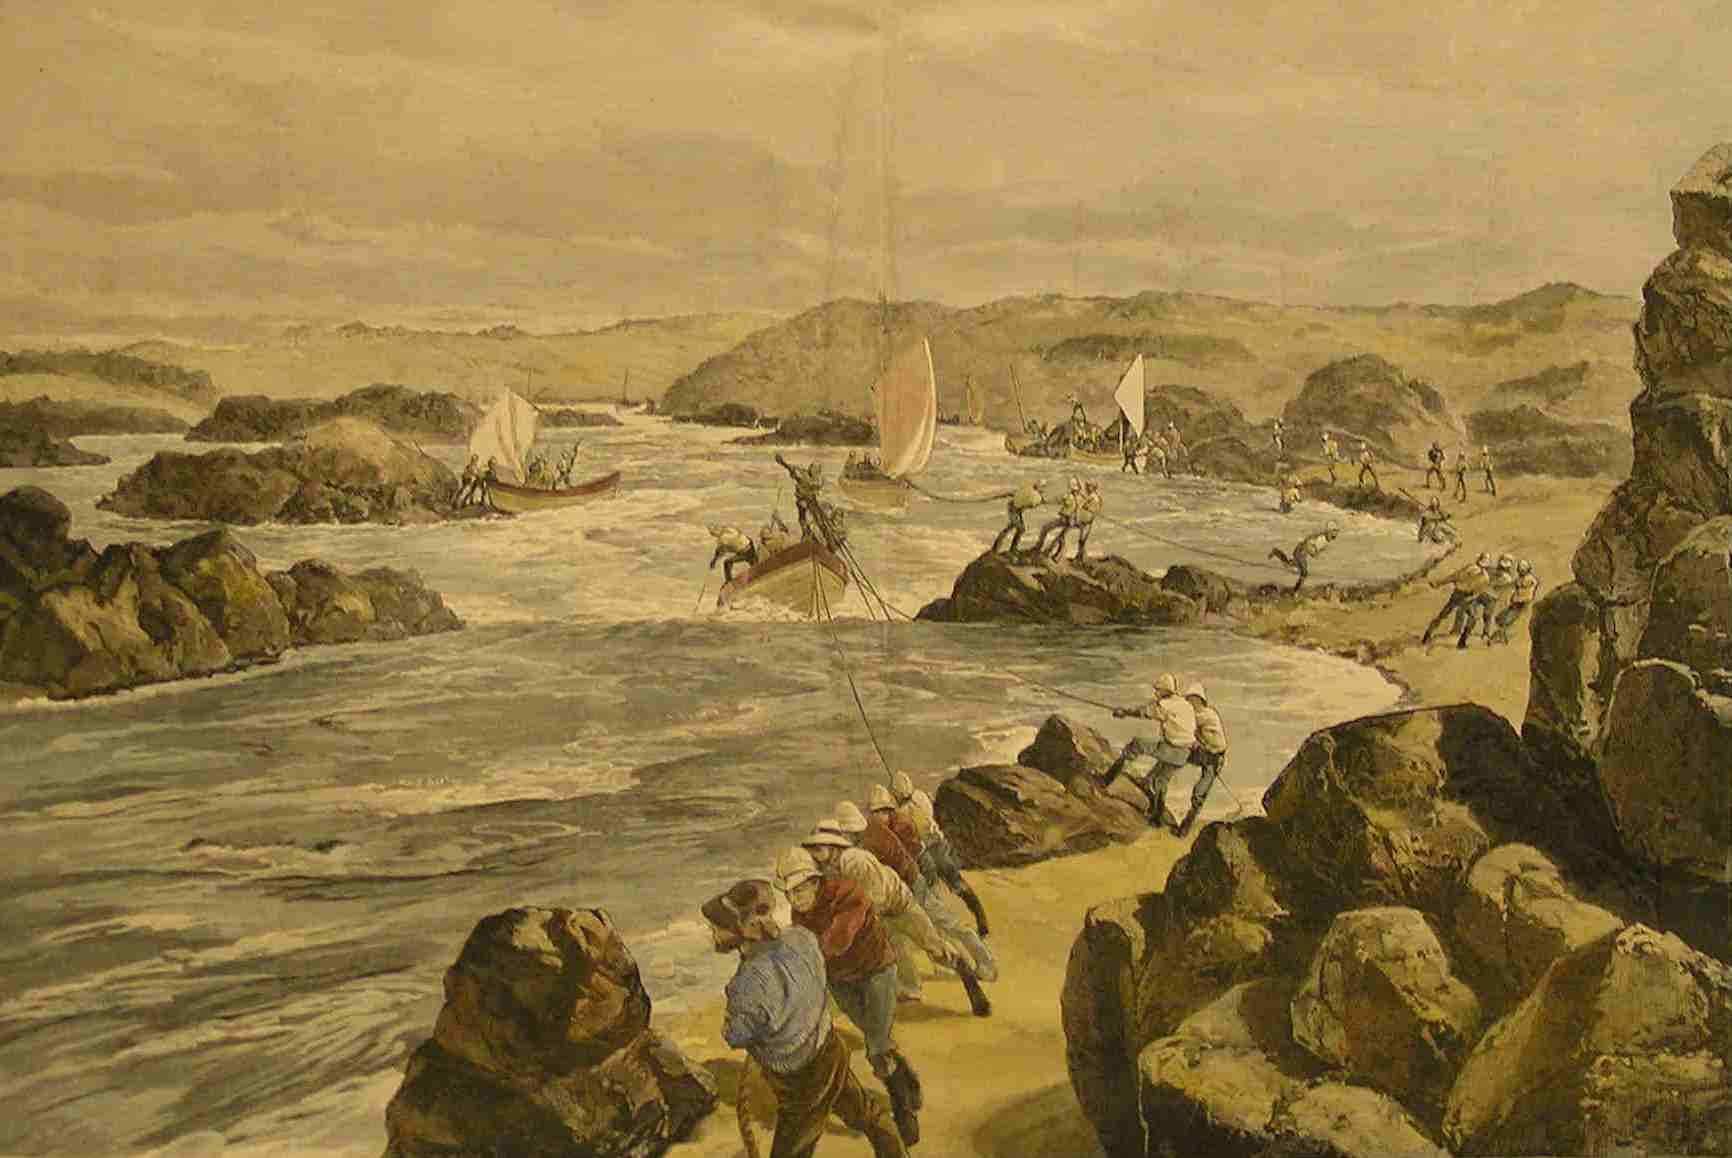 There was no alternative through the worst of the cataracts than to haul up the whaleboats by human labour, as animals or steam traction was impossible. This beautiful picture, cut from  The Illustrated London News  and hand-coloured, is of special interest for showing a Canadian voyageur in the foreground, one of a contingent of almost four-hundred men - including some forty Iroquoian Mohawks - brought over by General Wolseley because he had been so impressed with their skills as boatmen during his Red River expedition in western Canada fourteen years earlier. Instead of the anonymous officer of several of the other sketches, this one was by Melton Prior, special correspondent for the  Illustrated London News  during the Nile campaign.